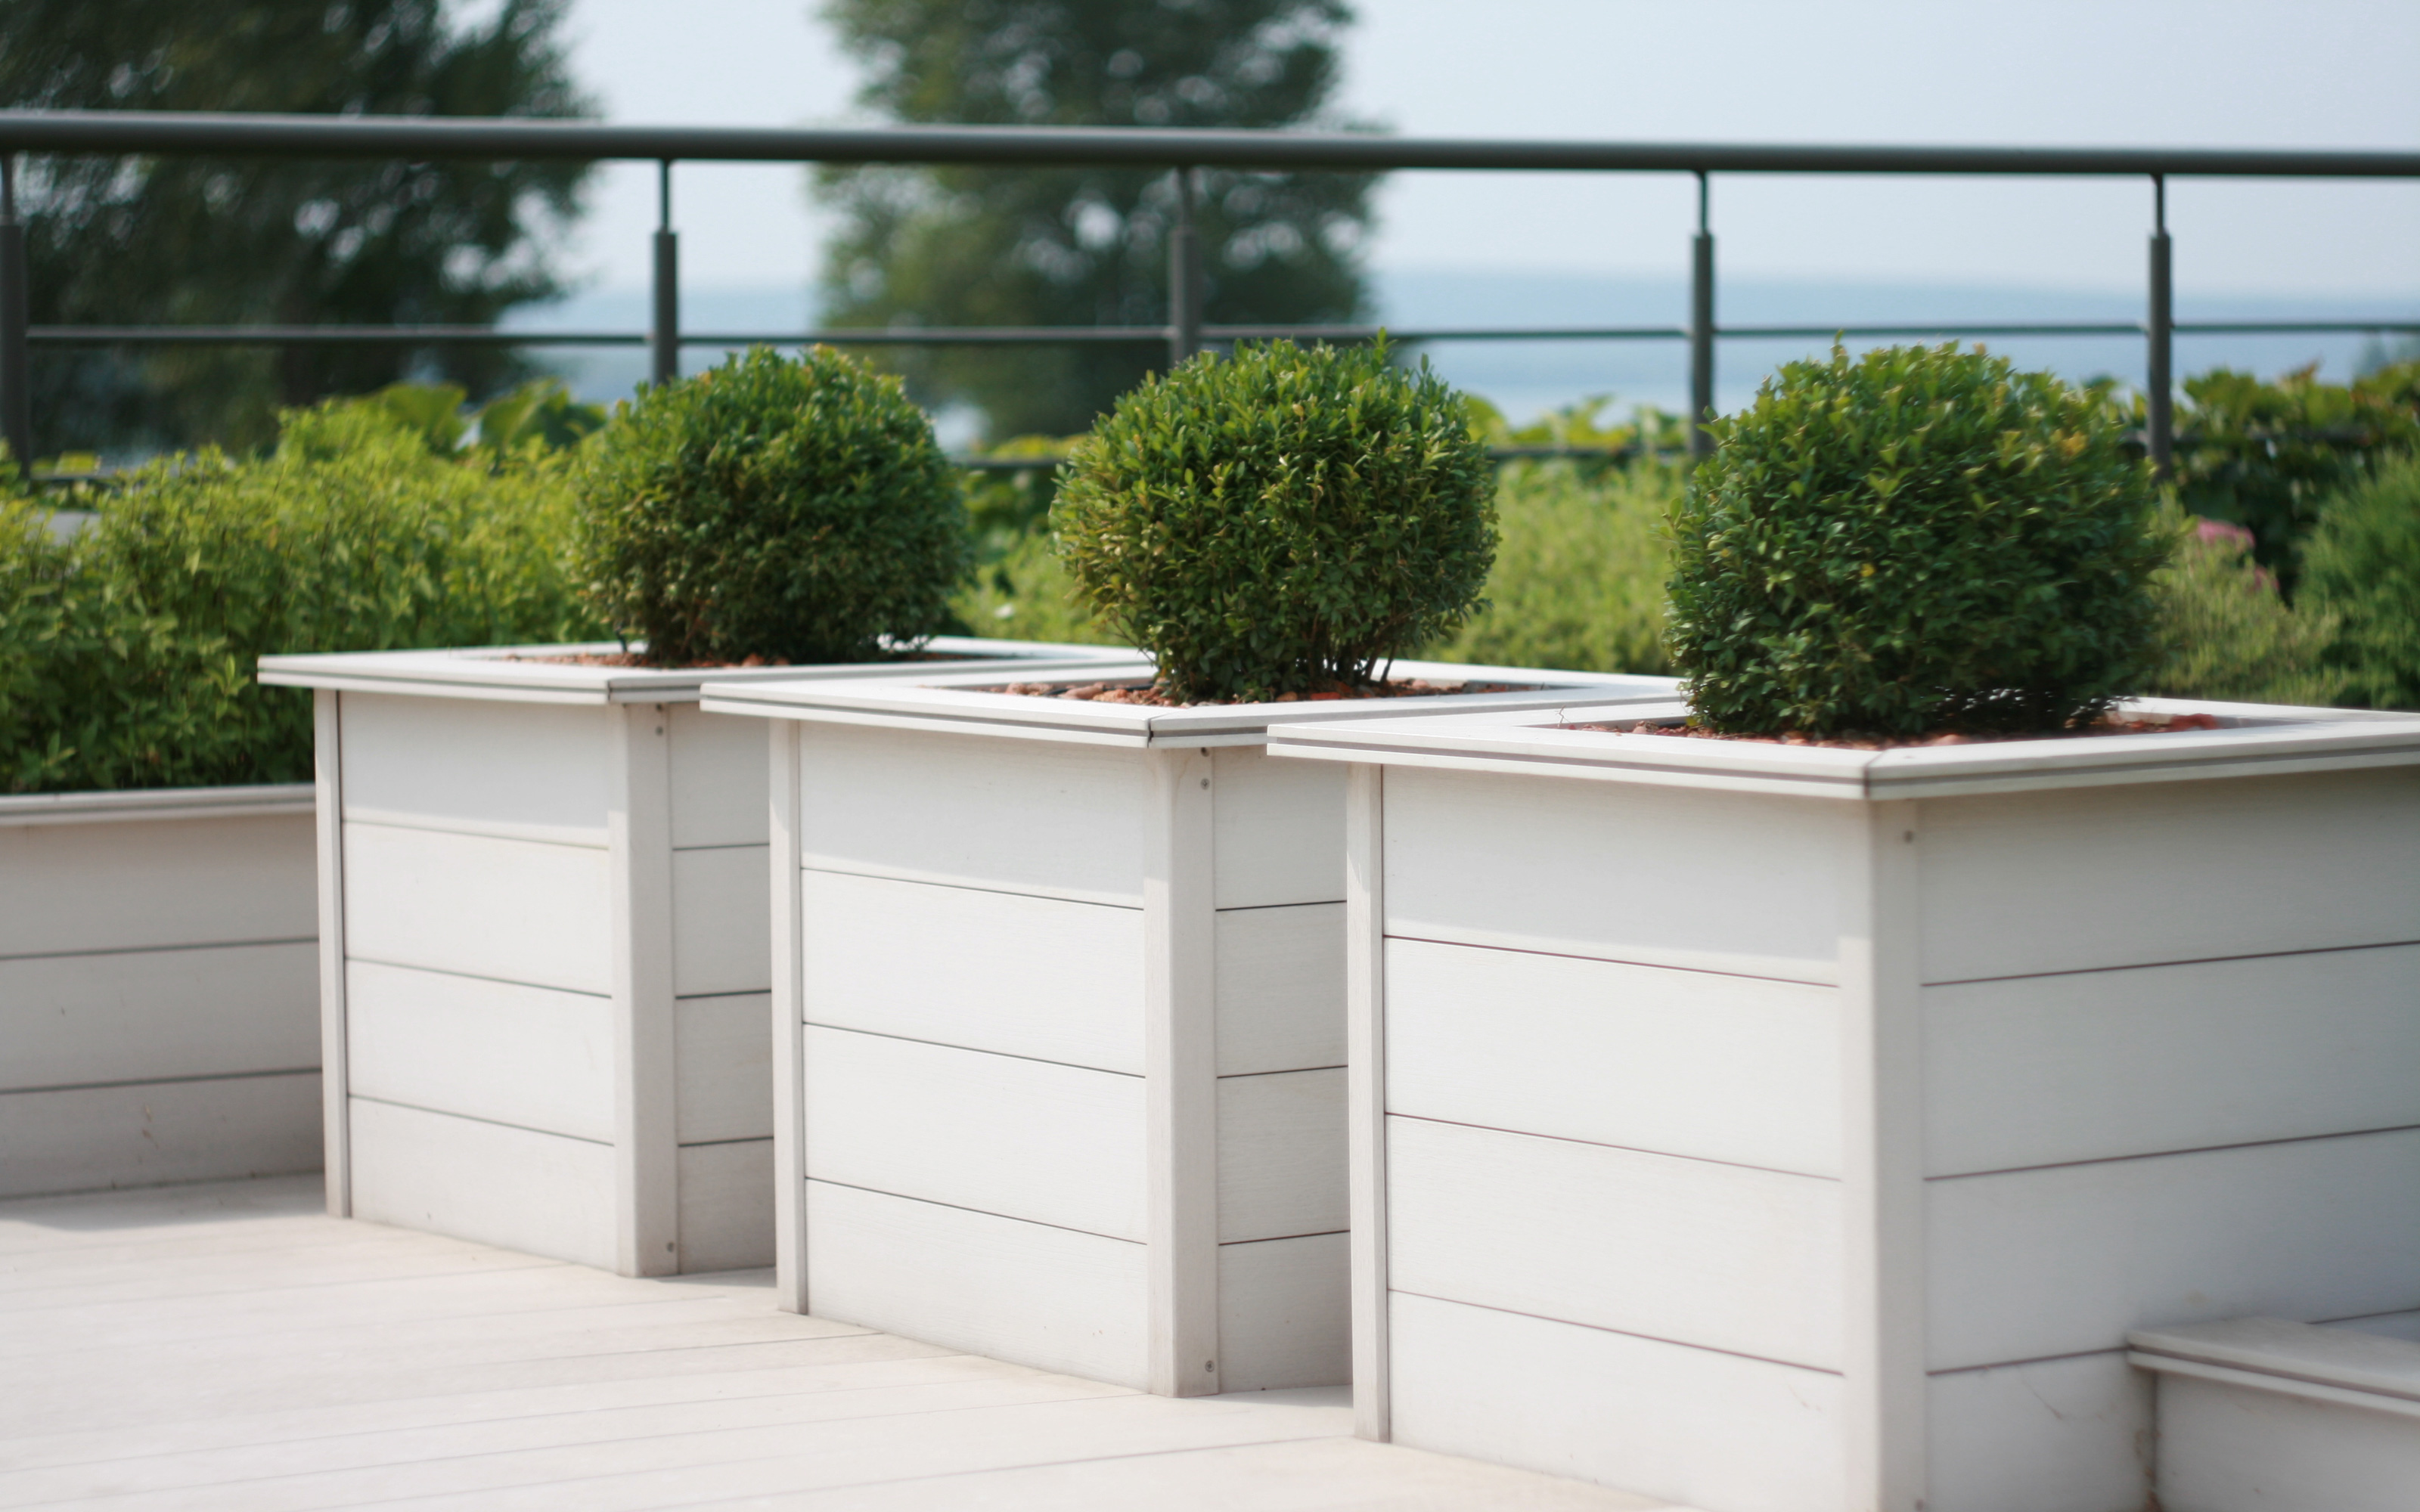 Box trees in wooden planters on a roof